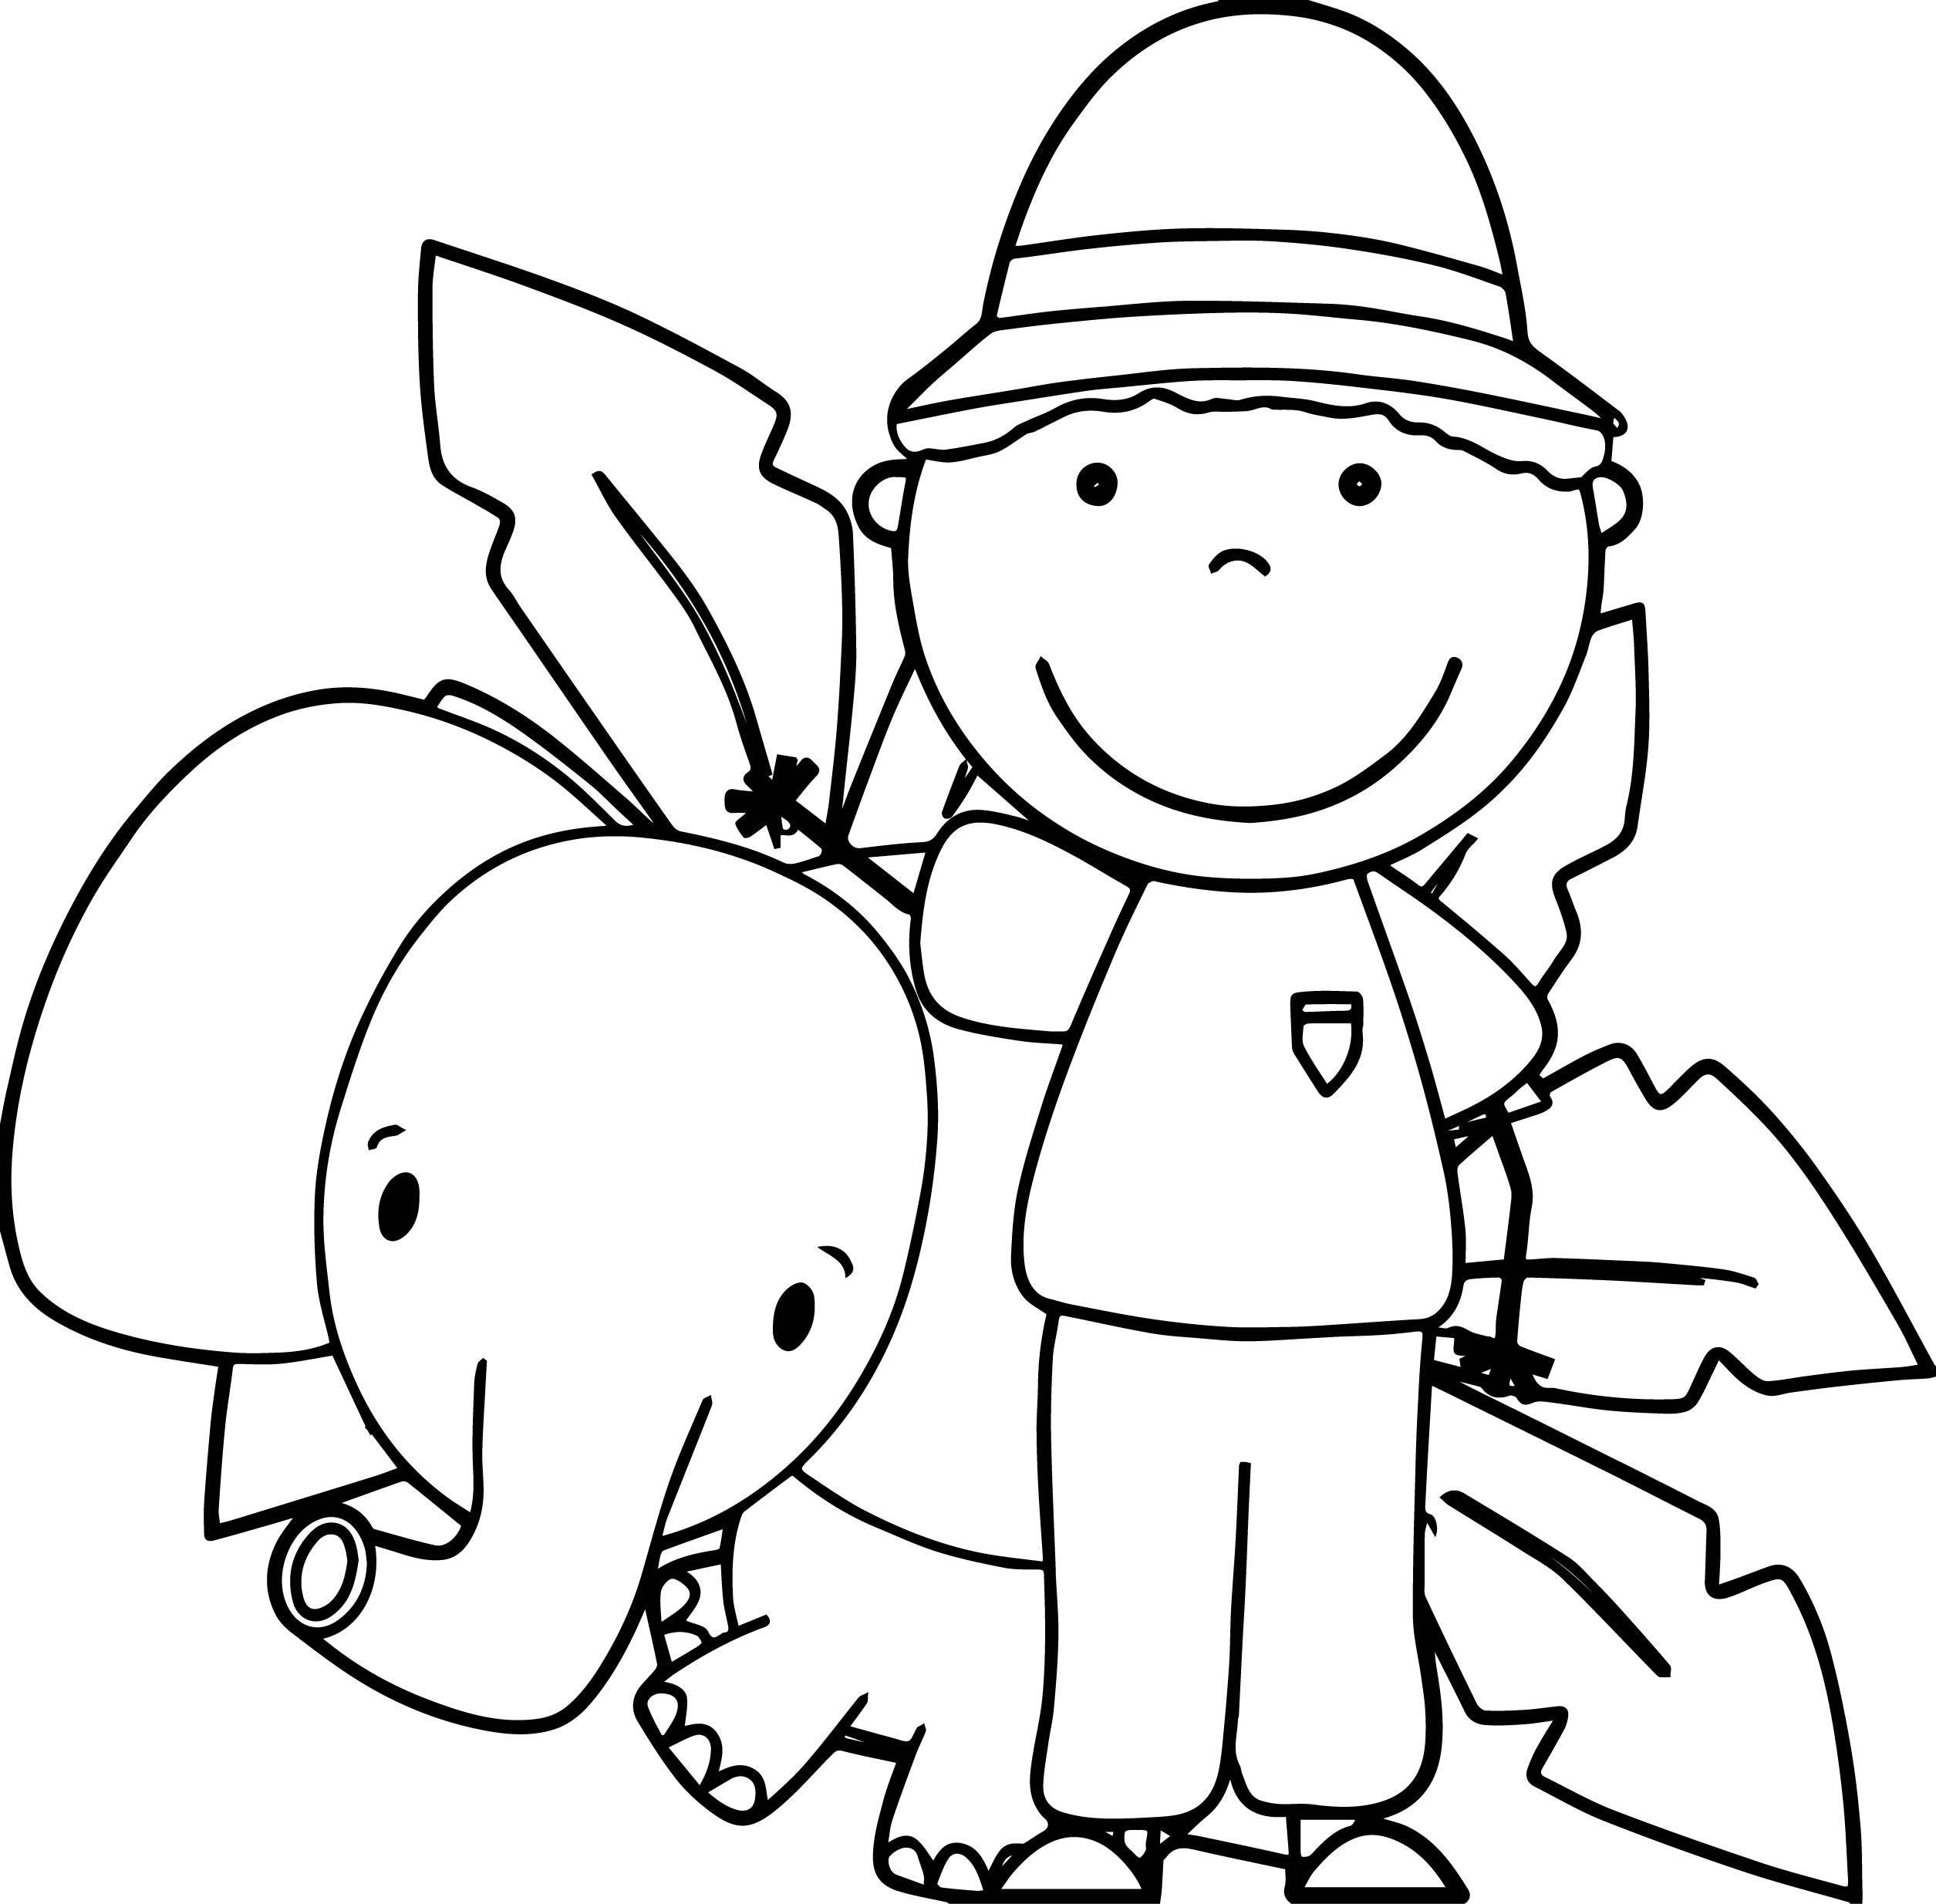 Elephant Coloring Pages - Zoo Keeper and Elephant Coloring Page